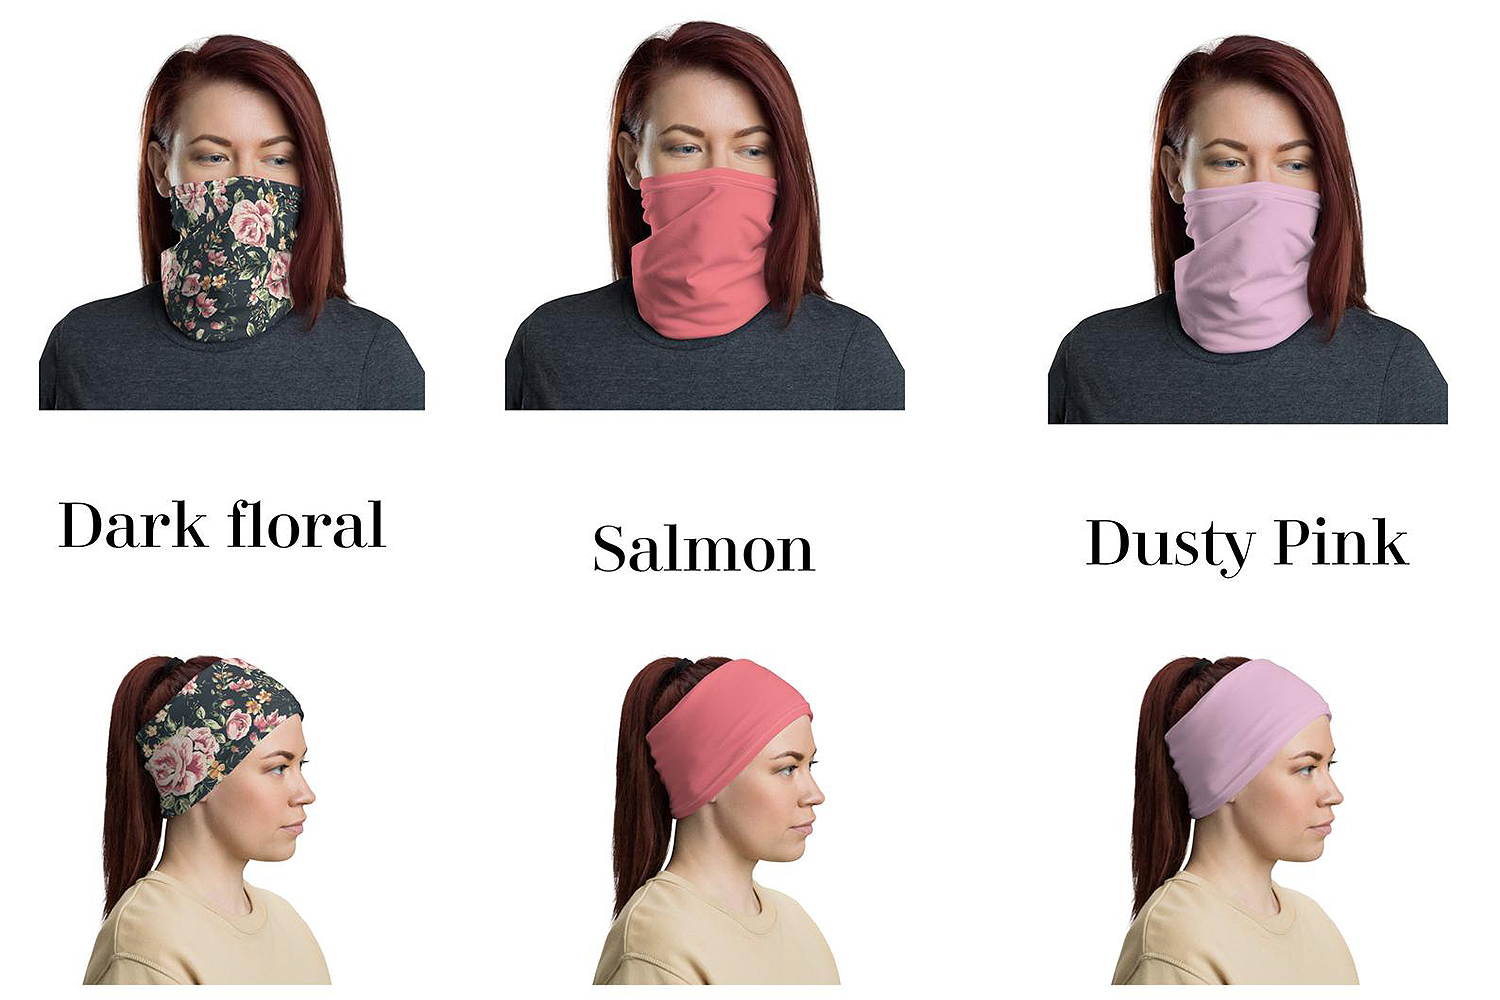 face-mask-counter-culture.jpg